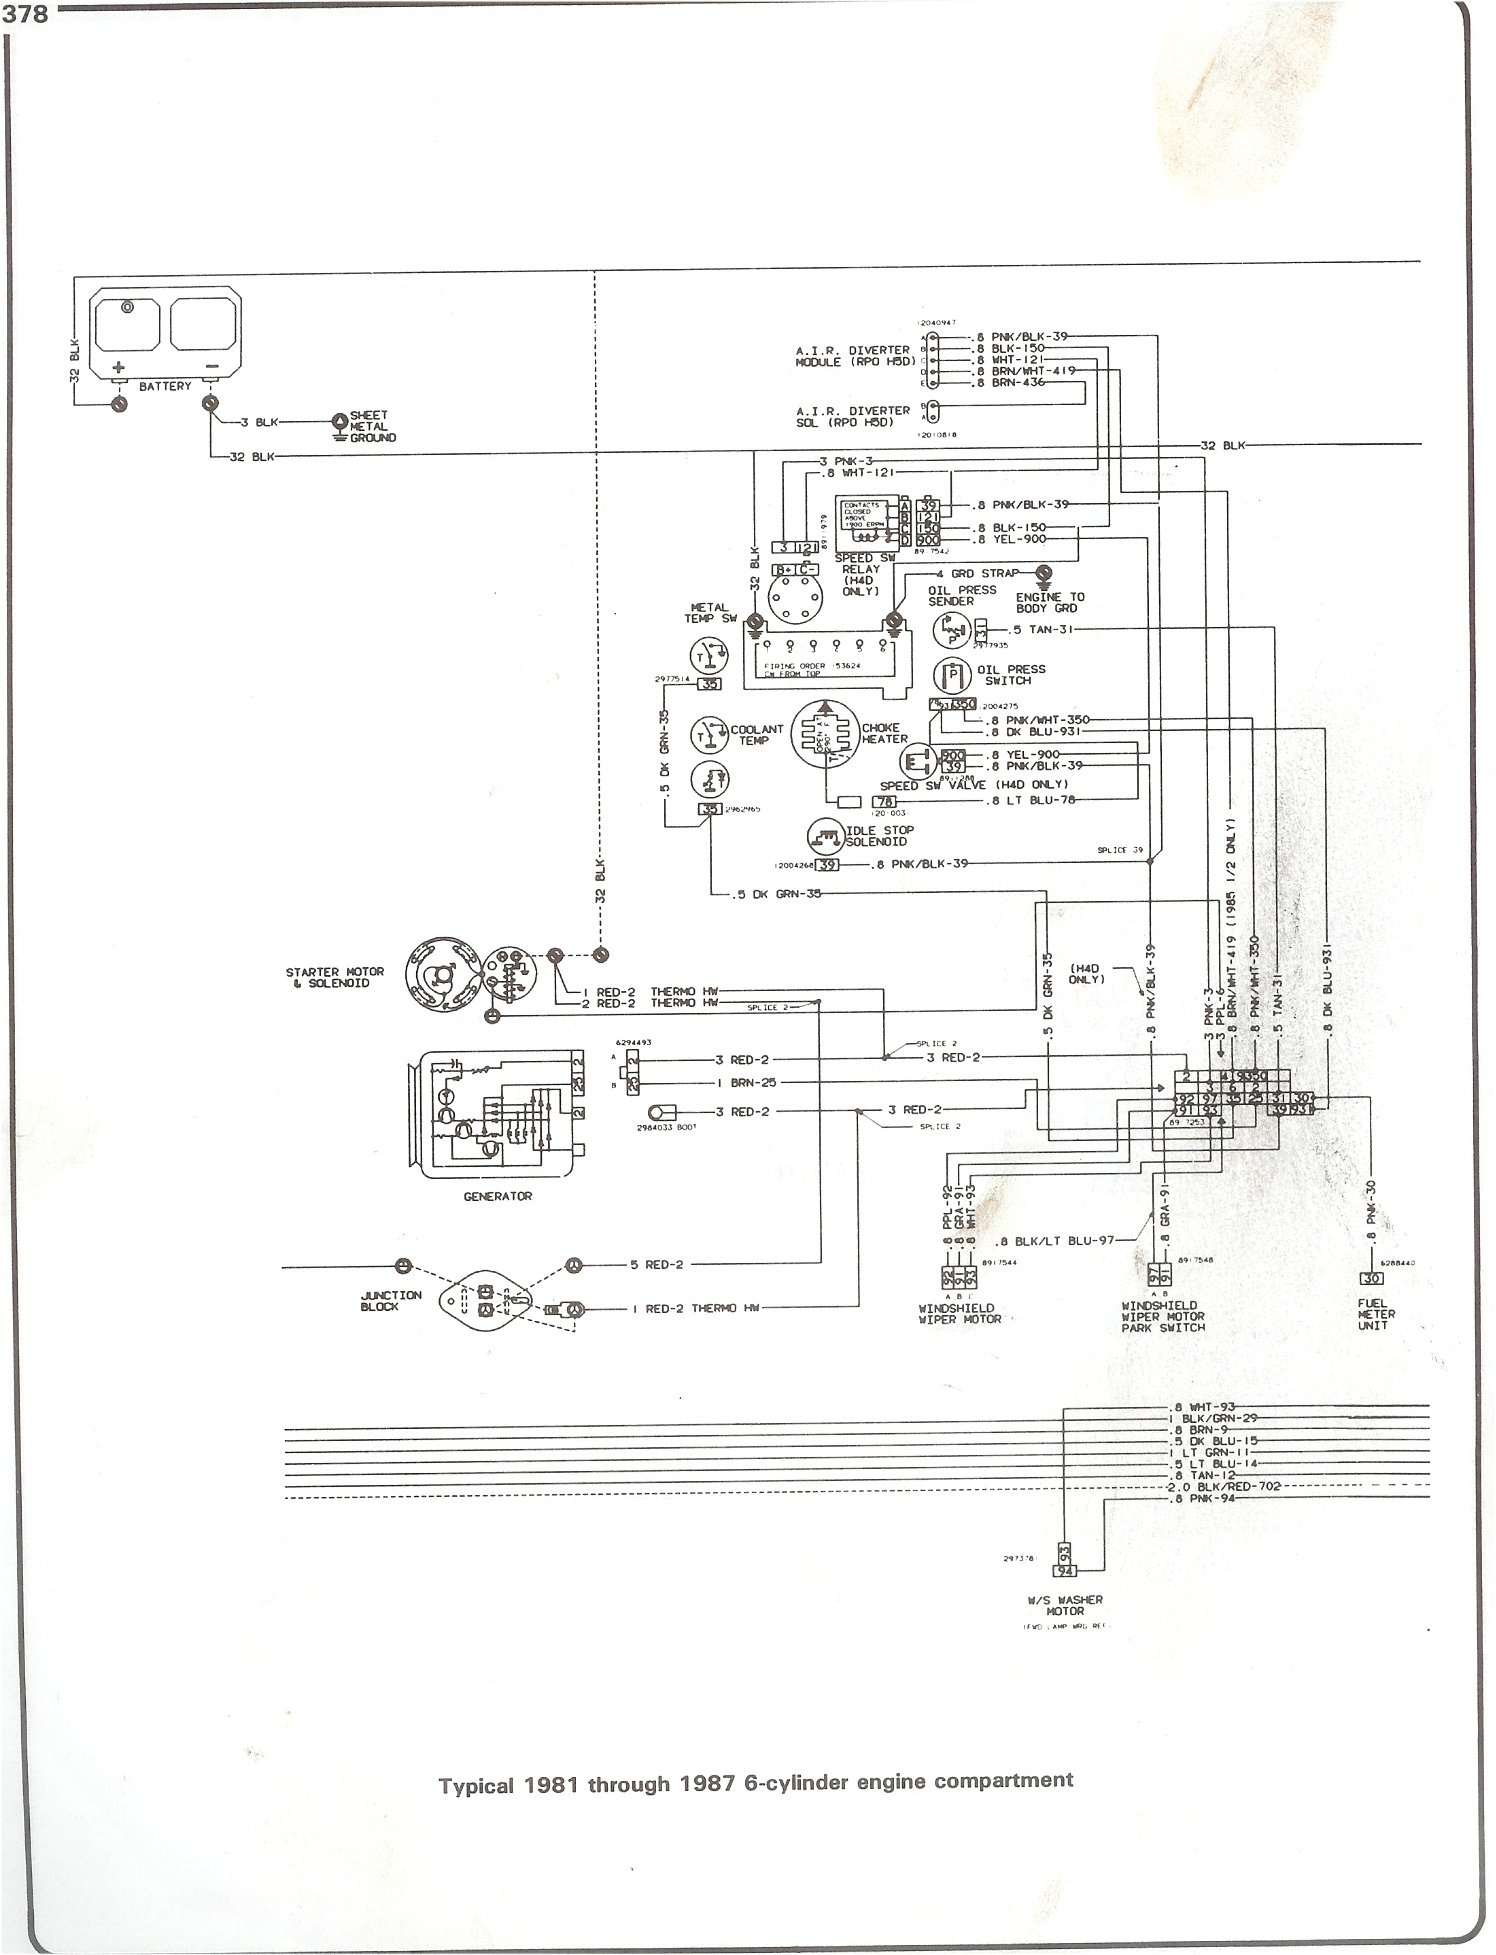 Ford F 250 Wiring Schematic 1991 Trusted Diagram 7 3l Engine F250 Rss Block And Diagrams U2022 1999 For 4x4